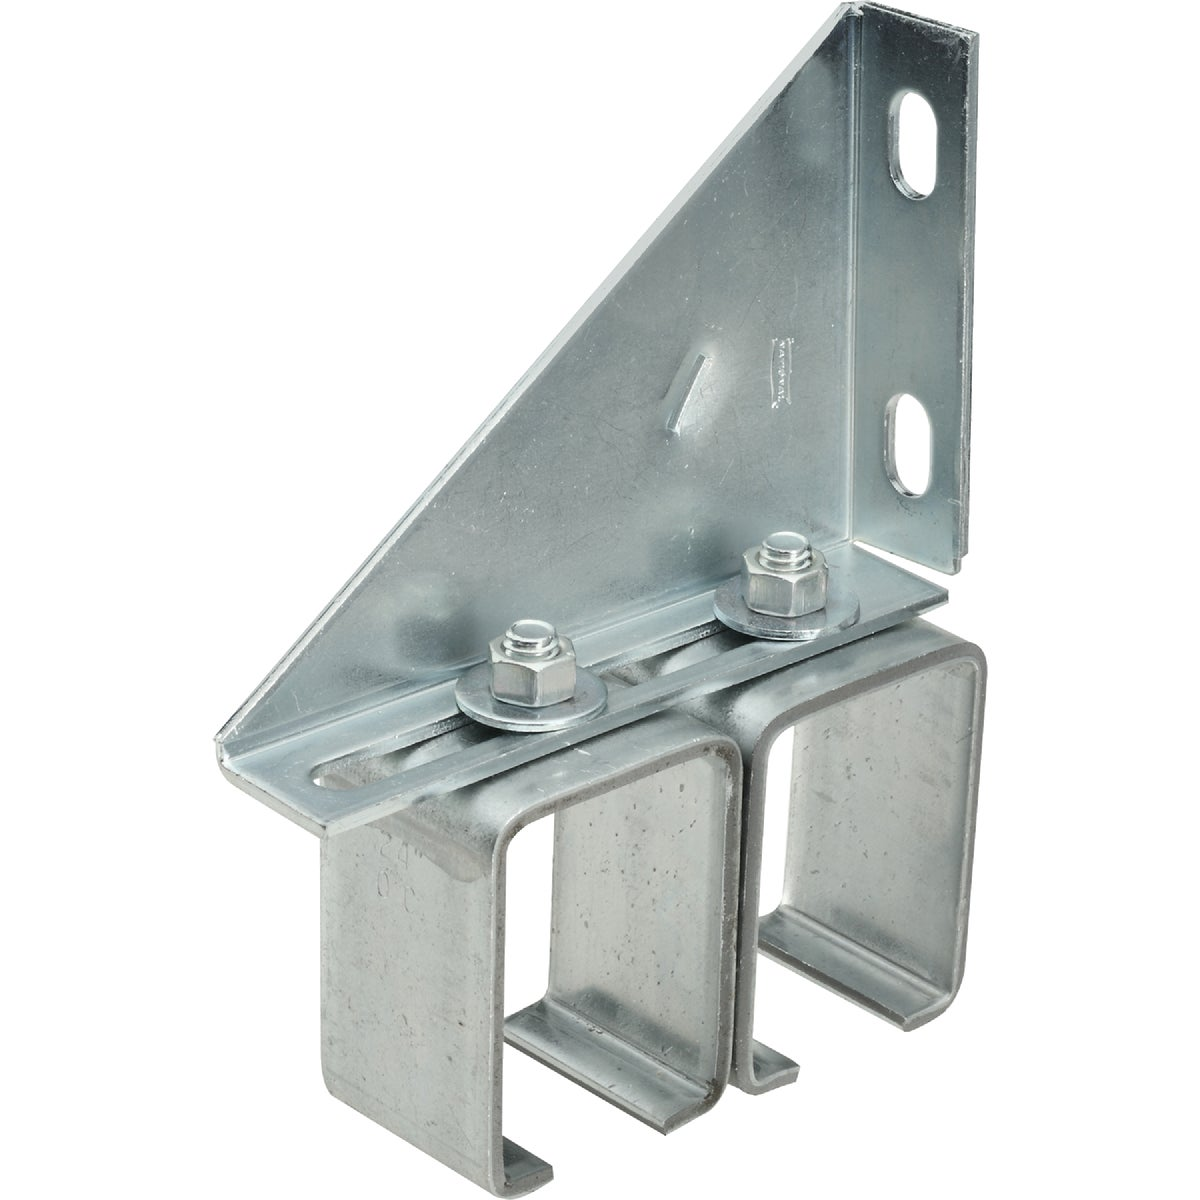 DOUBLE BRACKET - N104786 by National Mfg Co